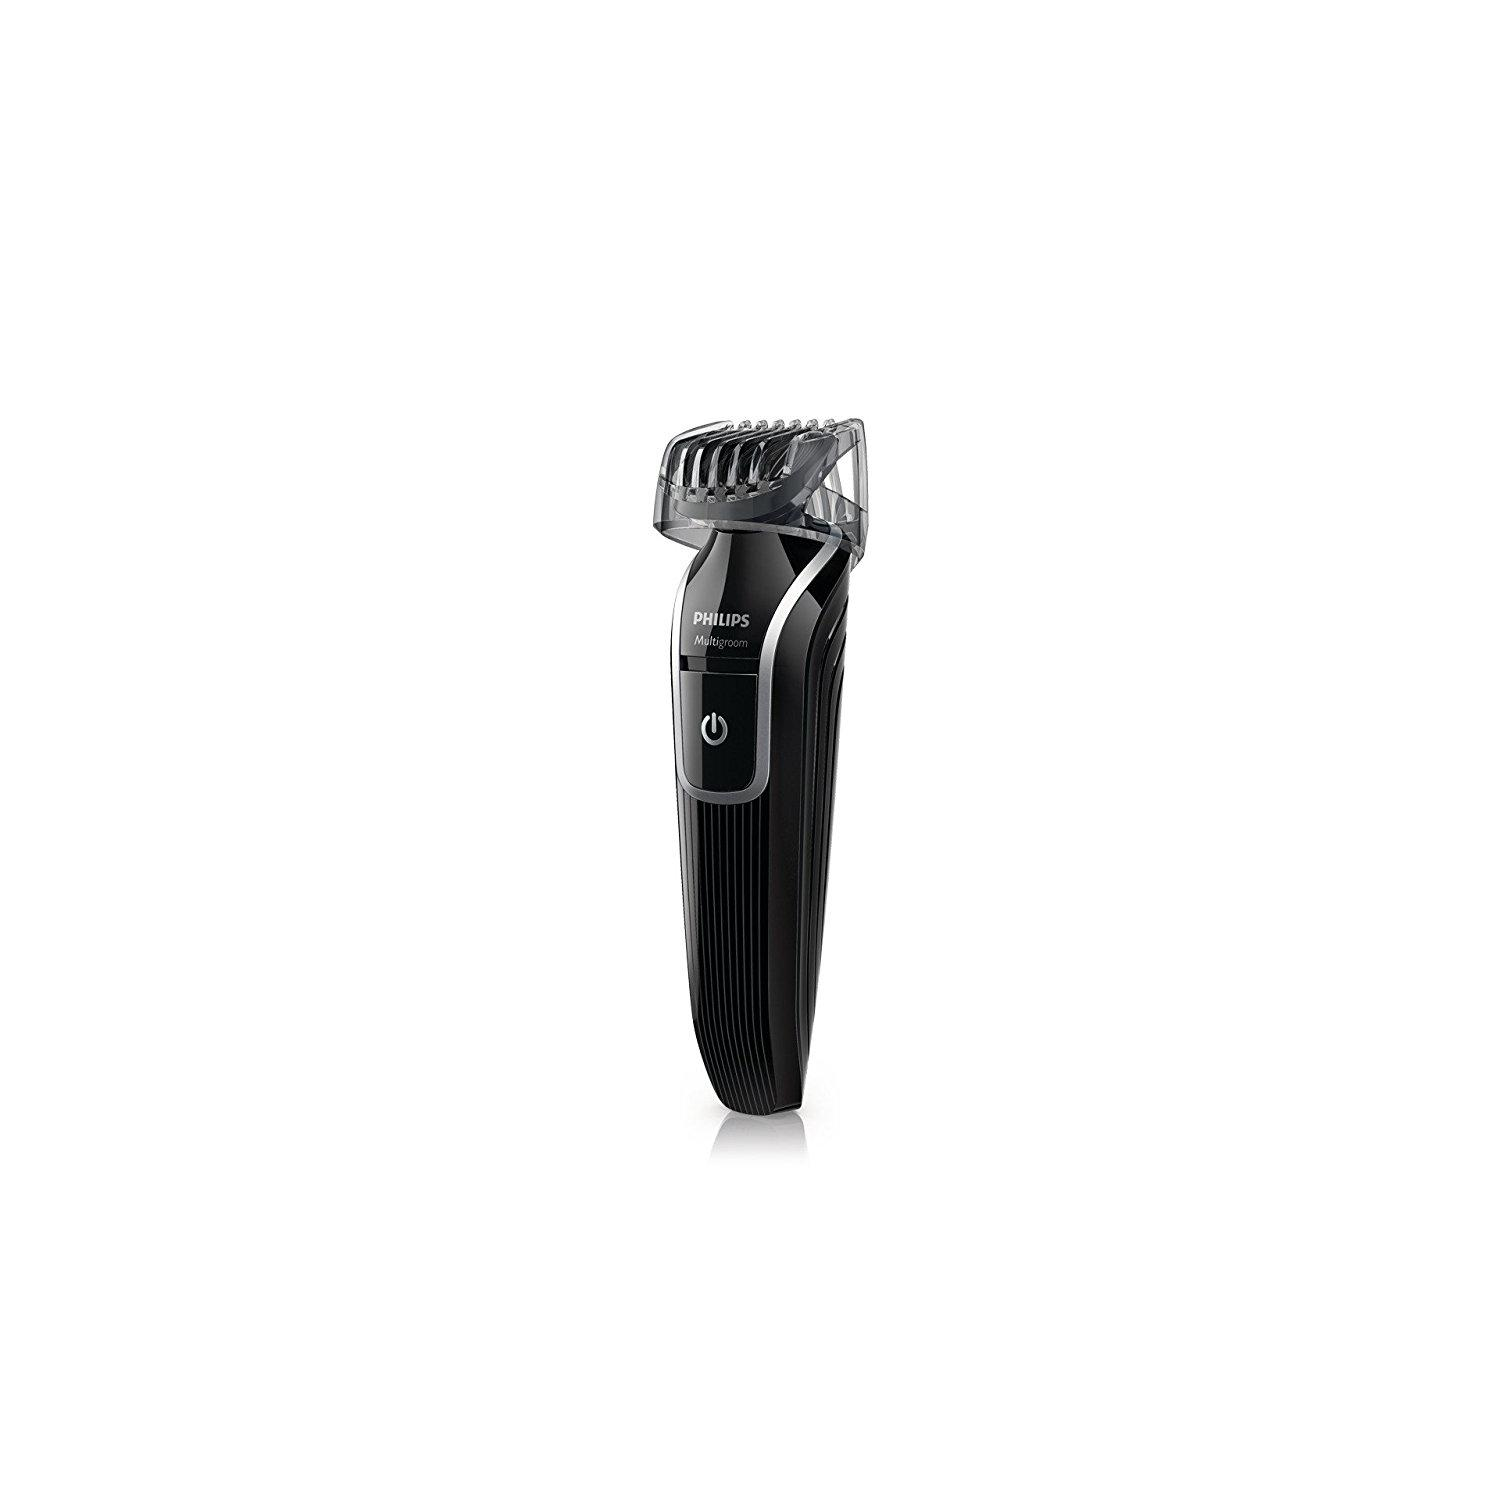 TONDEUSE À BARBE Philips Multigroom Qg3321/16